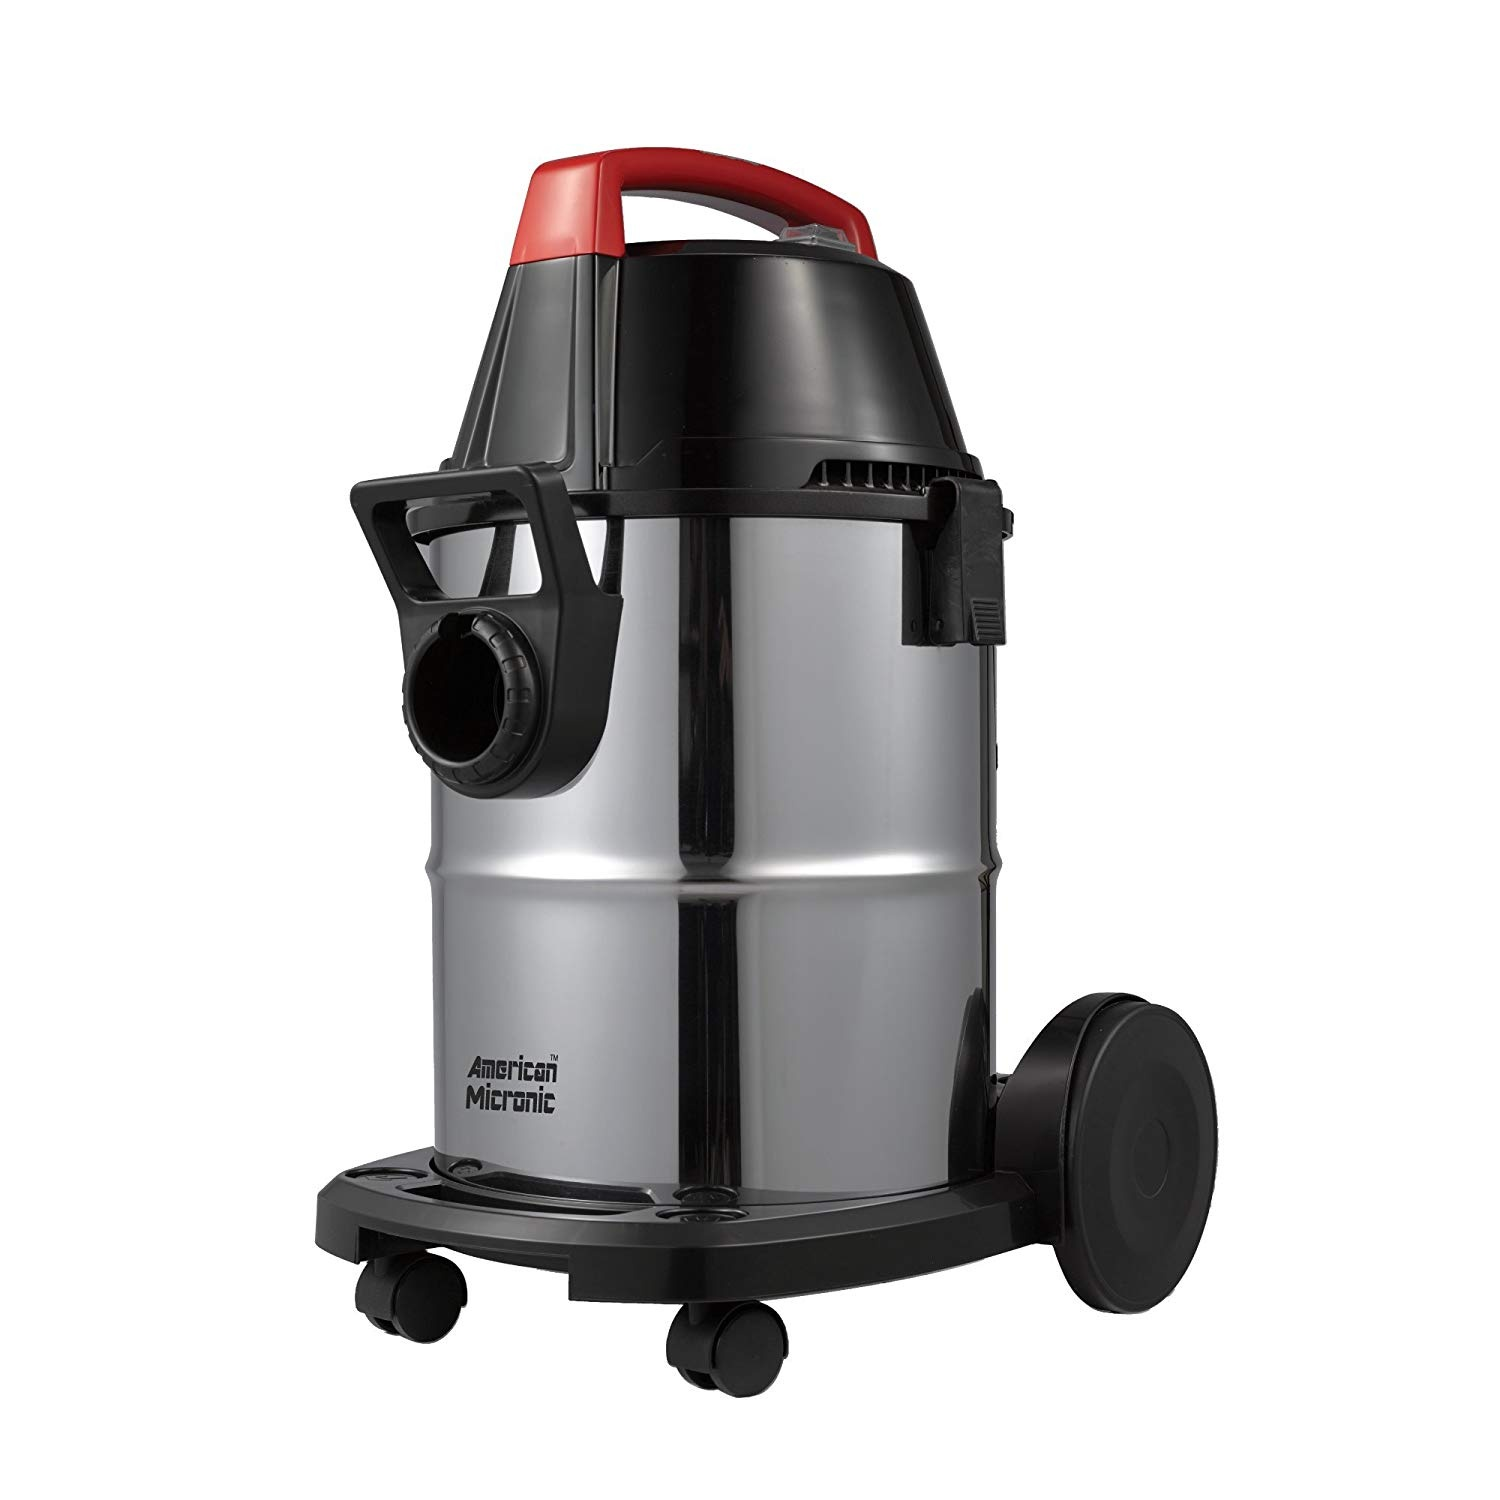 93dd7cadee45 This stainless steel vacuum cleaner is an excellent device to clean your  home or office. Designed to meet your varied needs